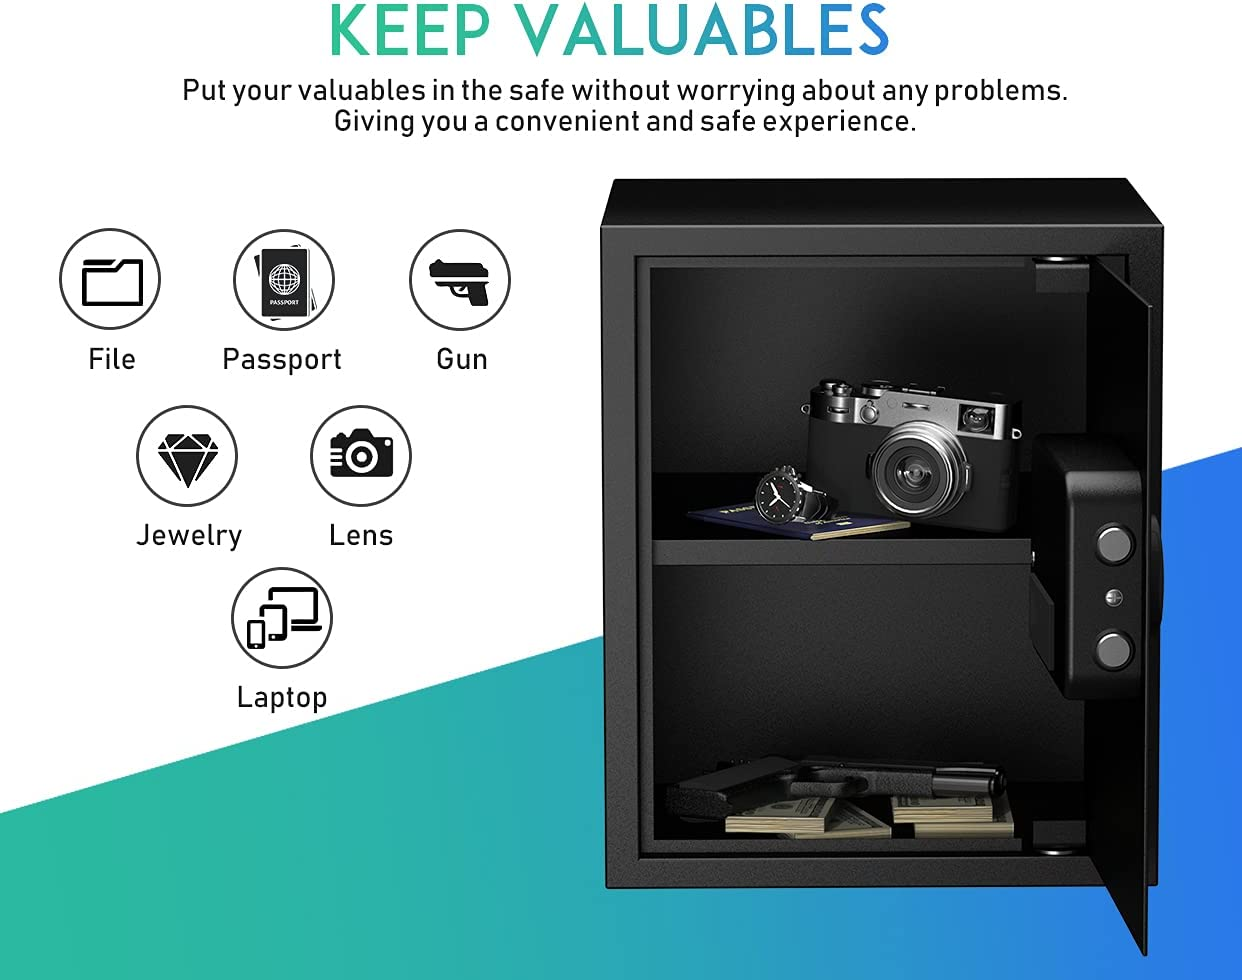 RPNB Deluxe Safe and Lock Box,Money Box,Digital Keypad Safe Box,Steel Alloy Drop Safe, Keypad Lock,Perfect for Home Office Hotel Business Jewelry Gun Cash Use Storage,1.52 Cubic Feet - -